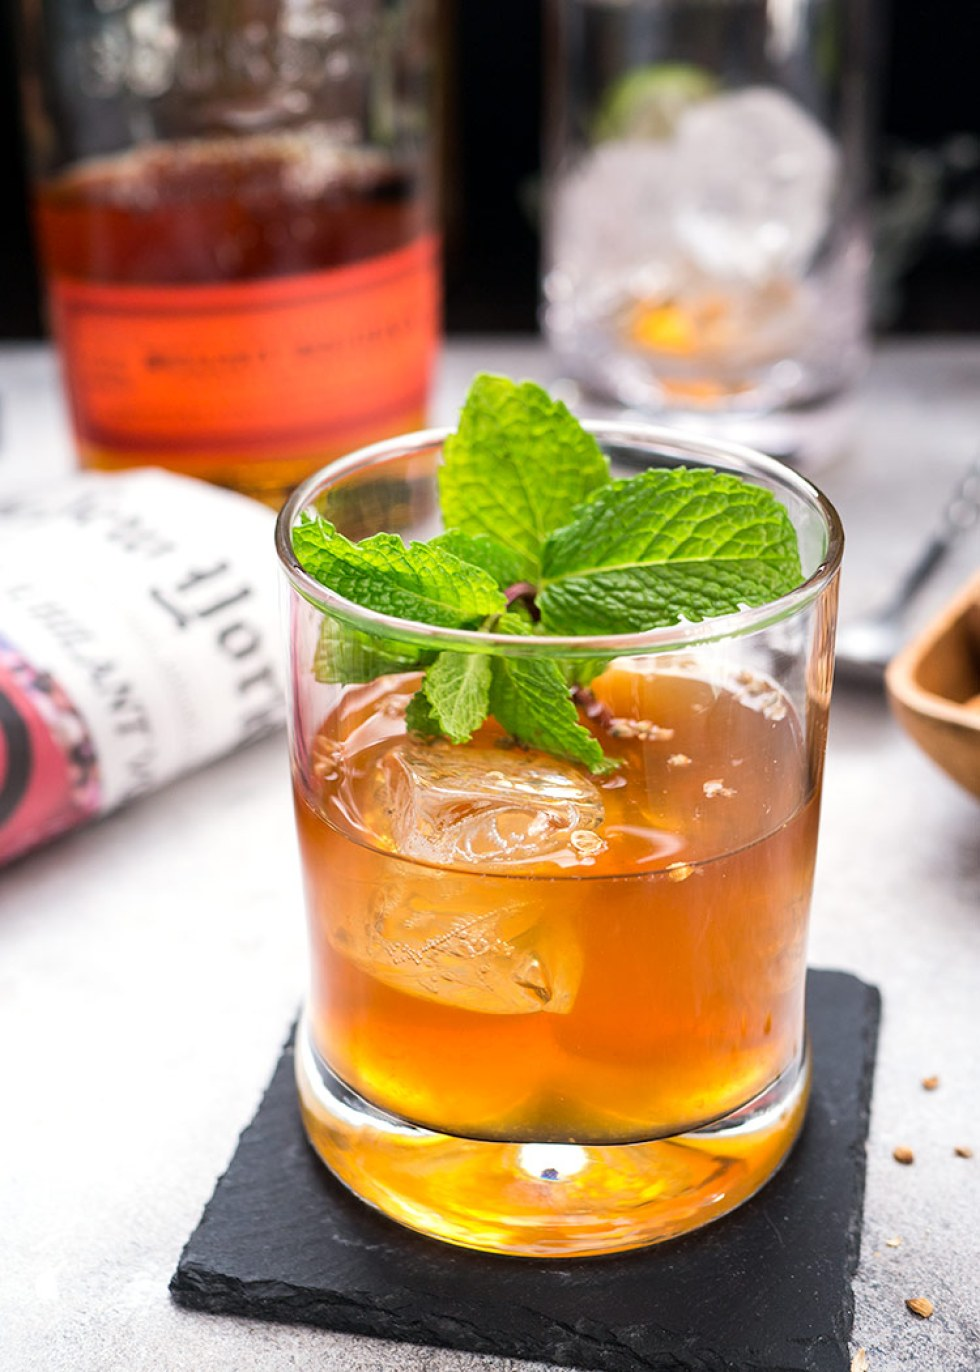 This is a simple cocktail made with black tea and some fine bourbon. It's inspired from a famous movie called 'To kill a mockingbird' thus the name 'Another man's shoe'.